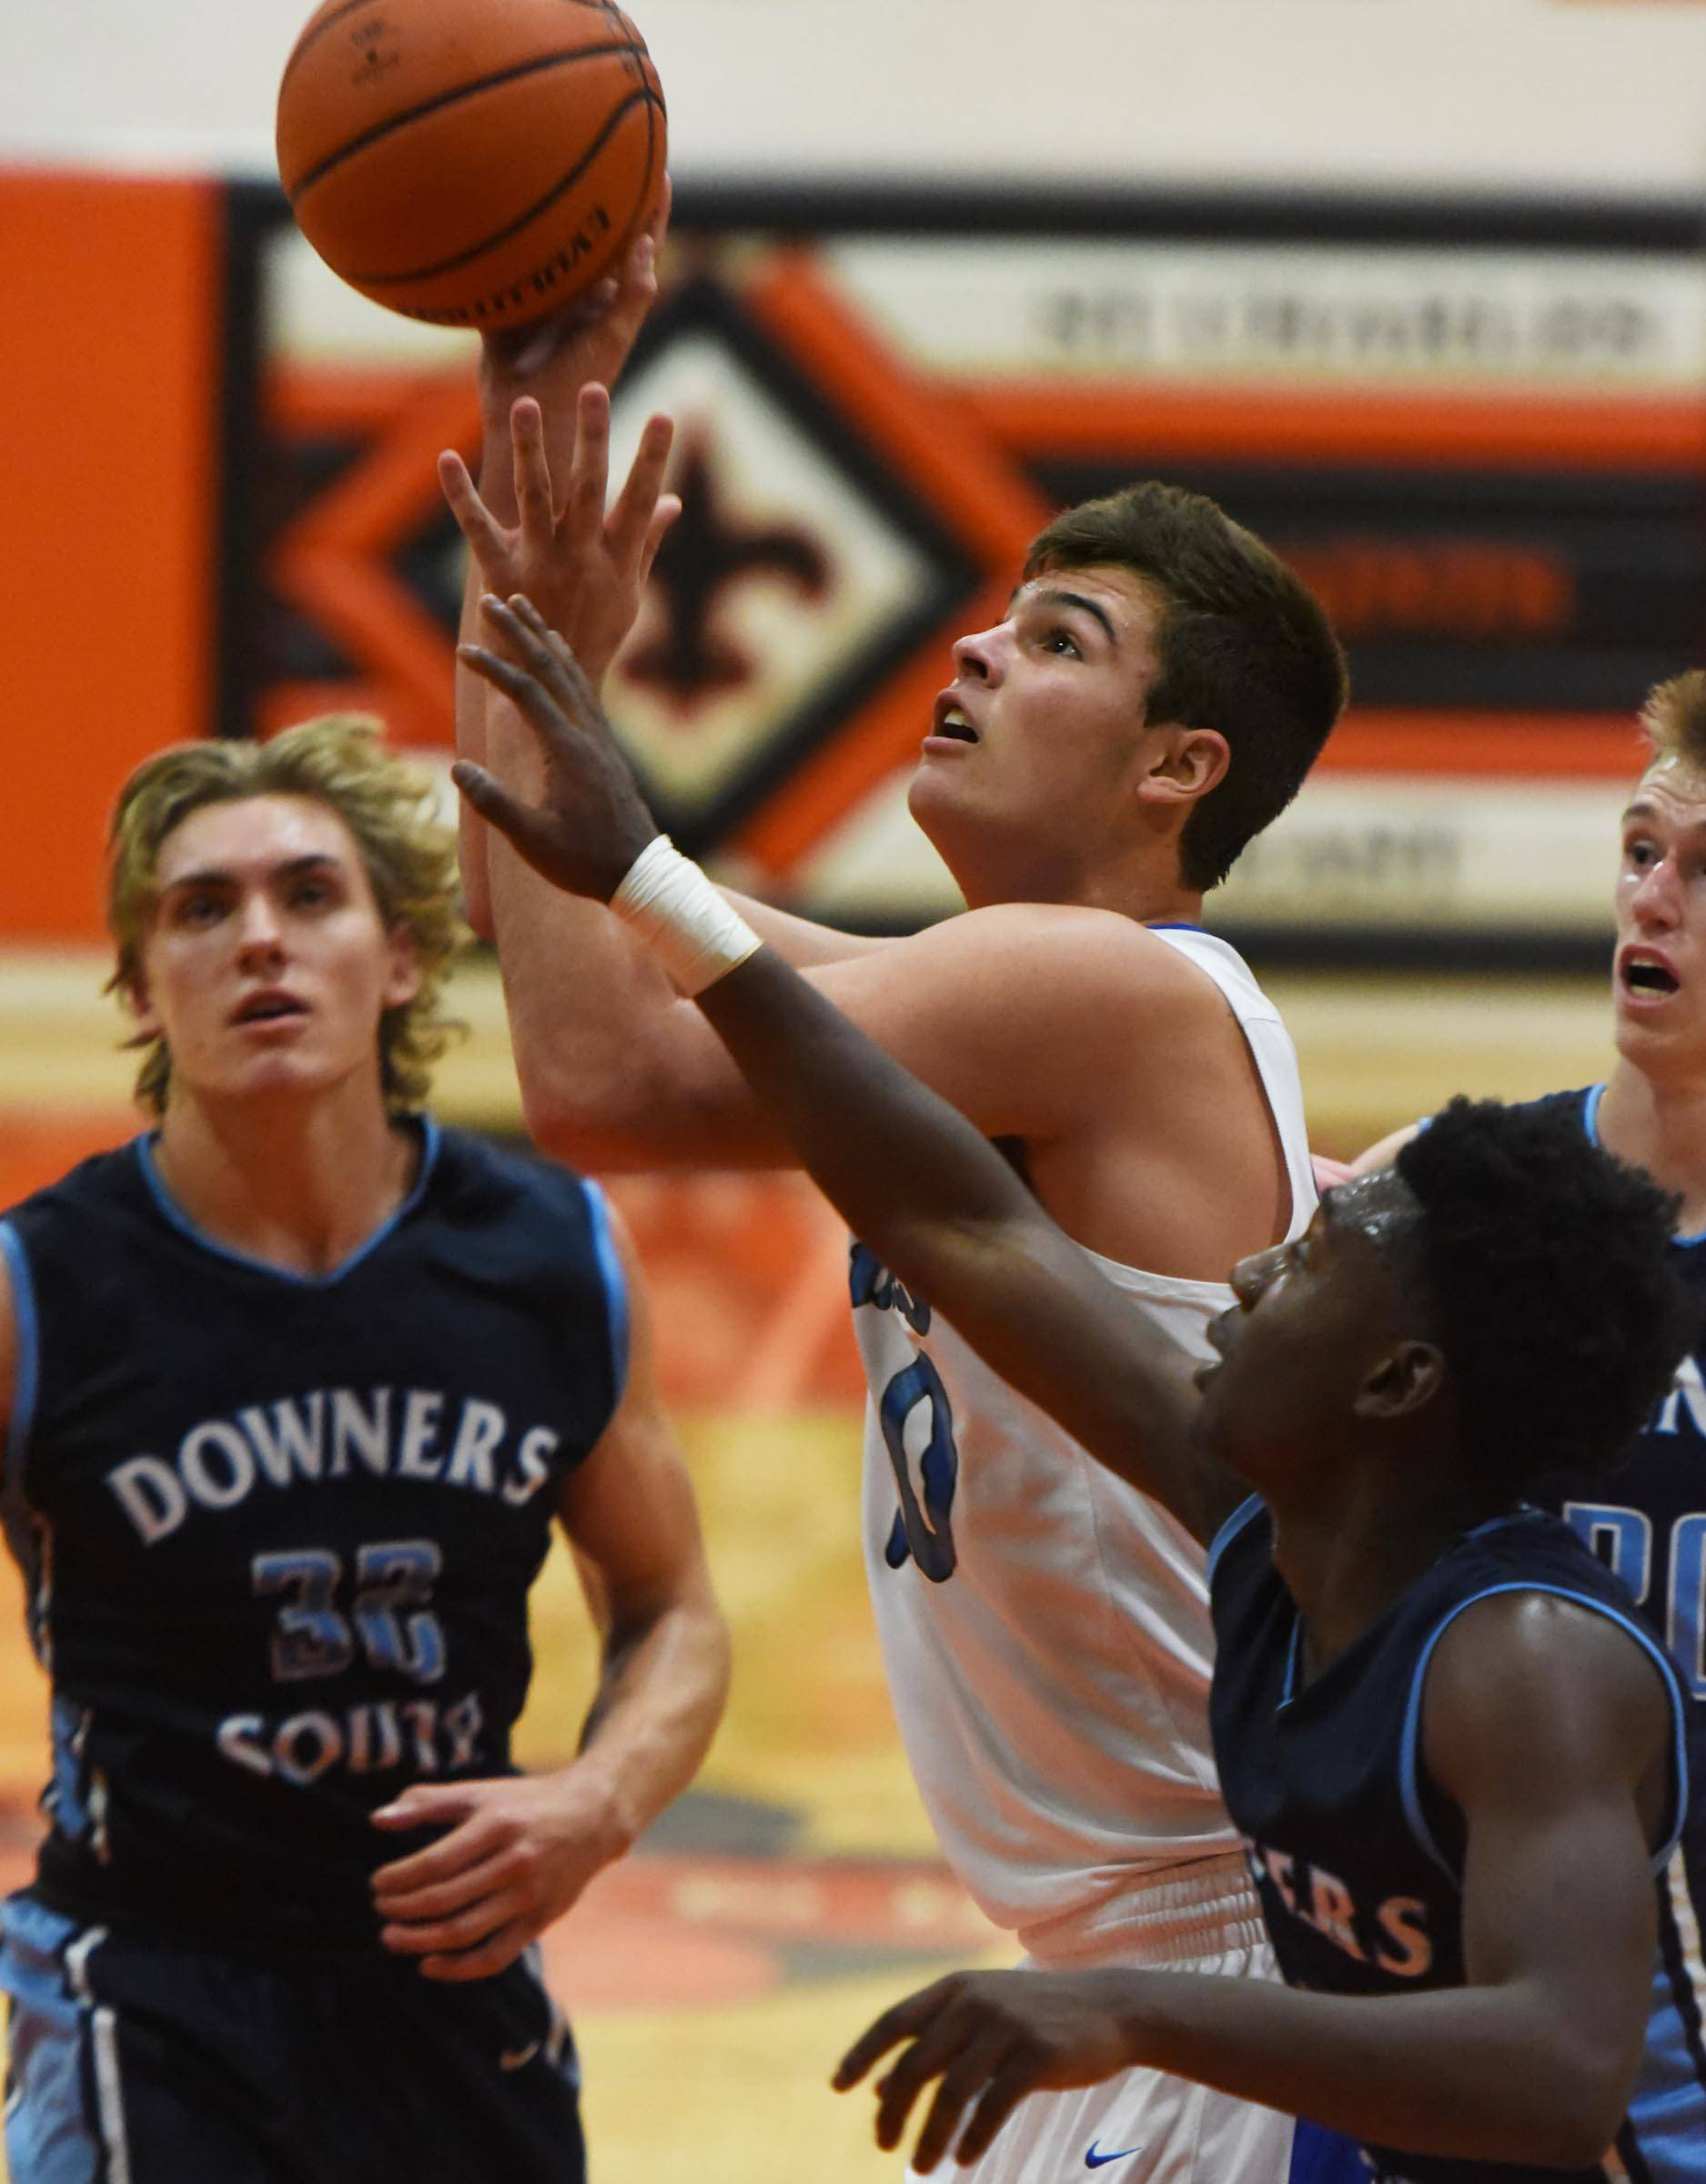 St. Charles North's Kyle King shoots while surrounded by Downers Grove South players last season.